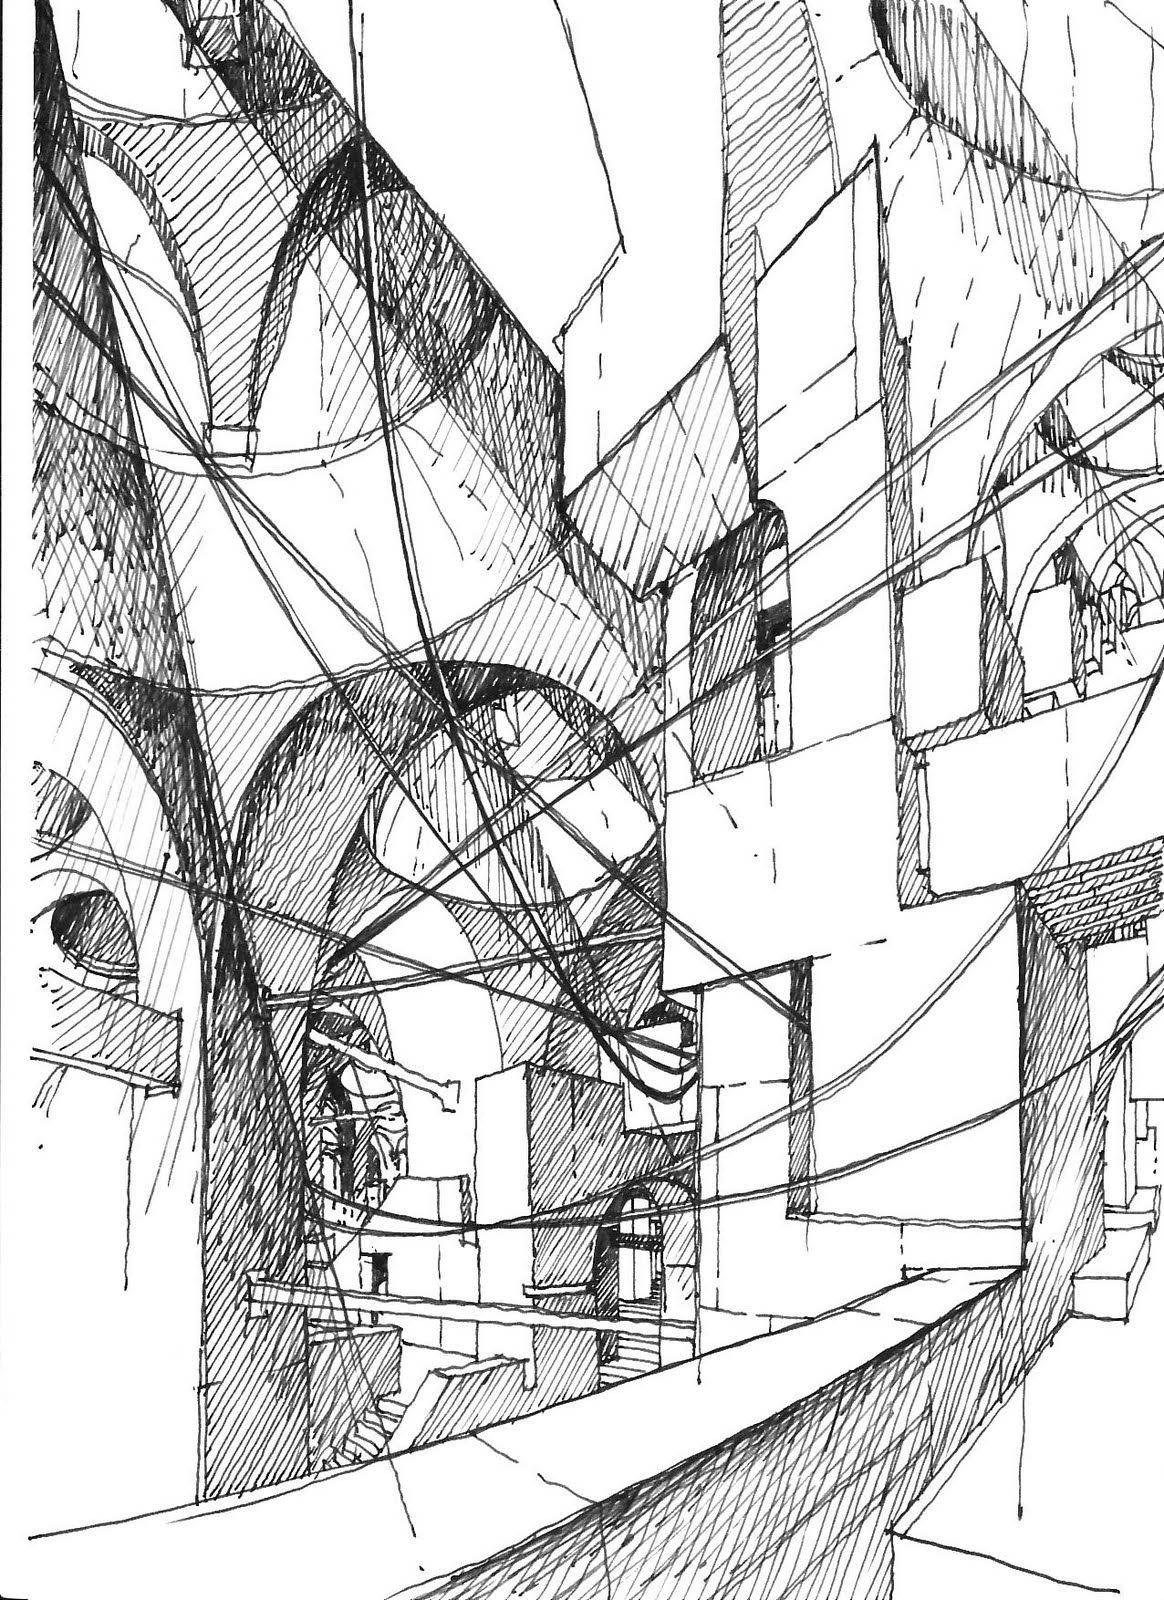 The Architecture Draftsman Architecture Sketch Diagram Architecture Architecture